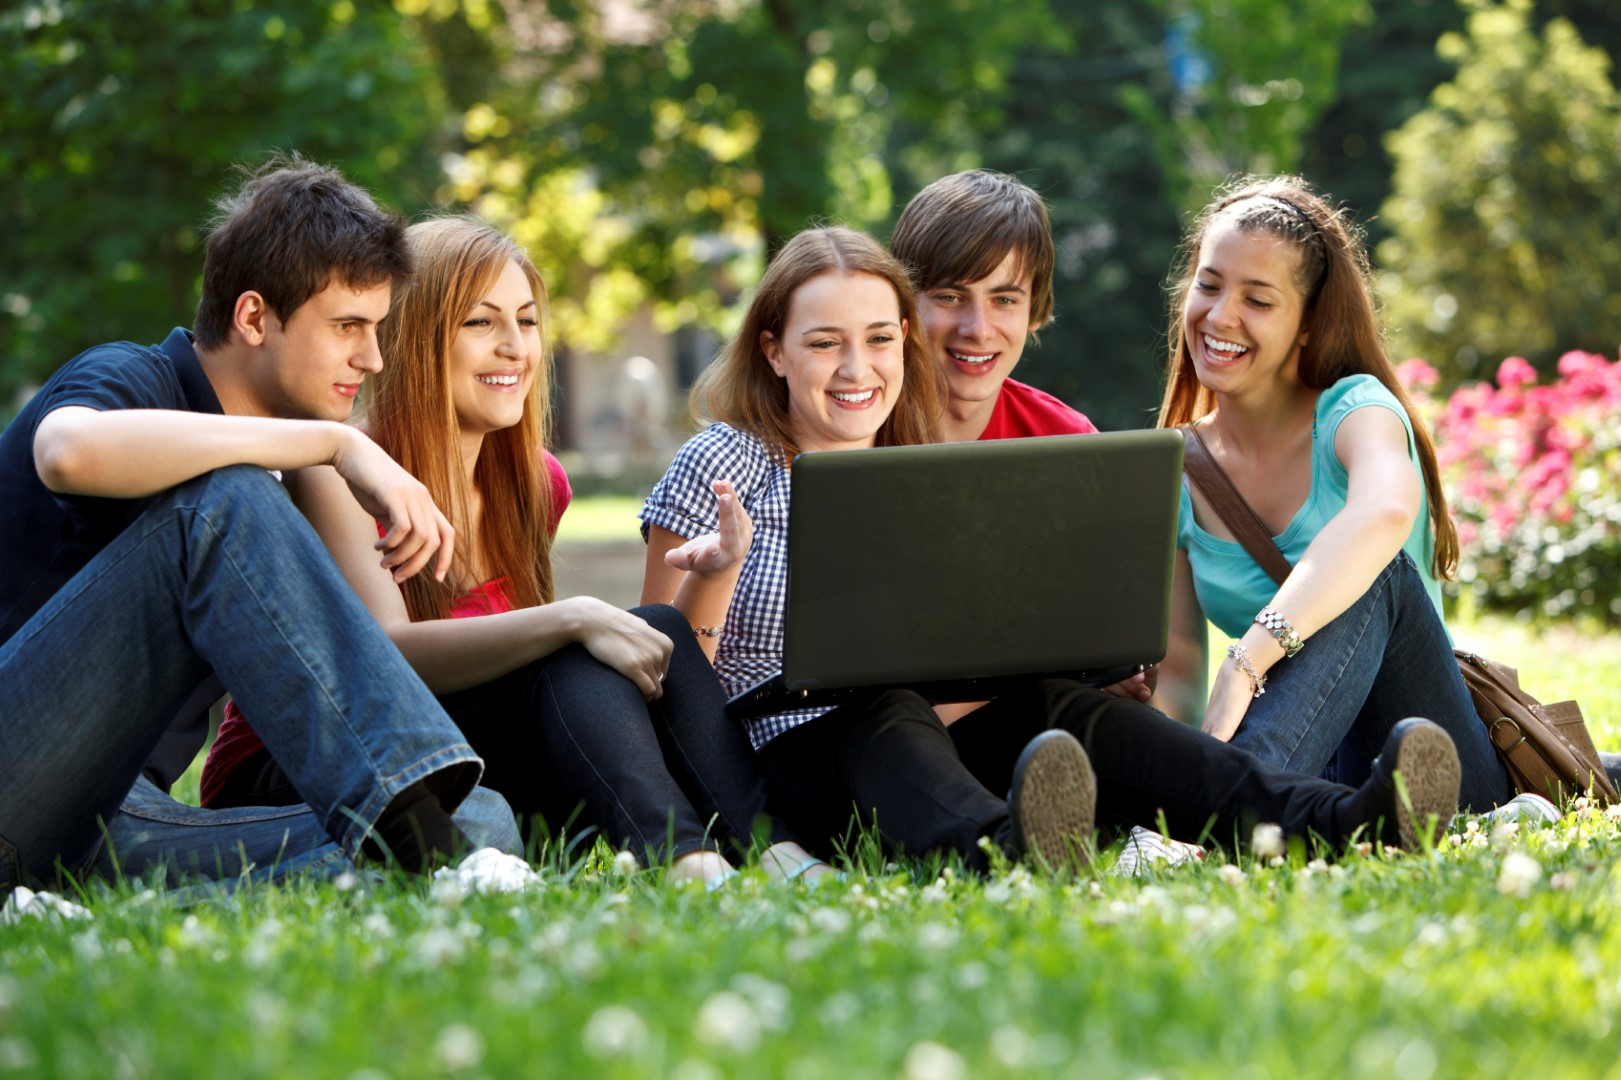 Group of college students using laptop outdoors